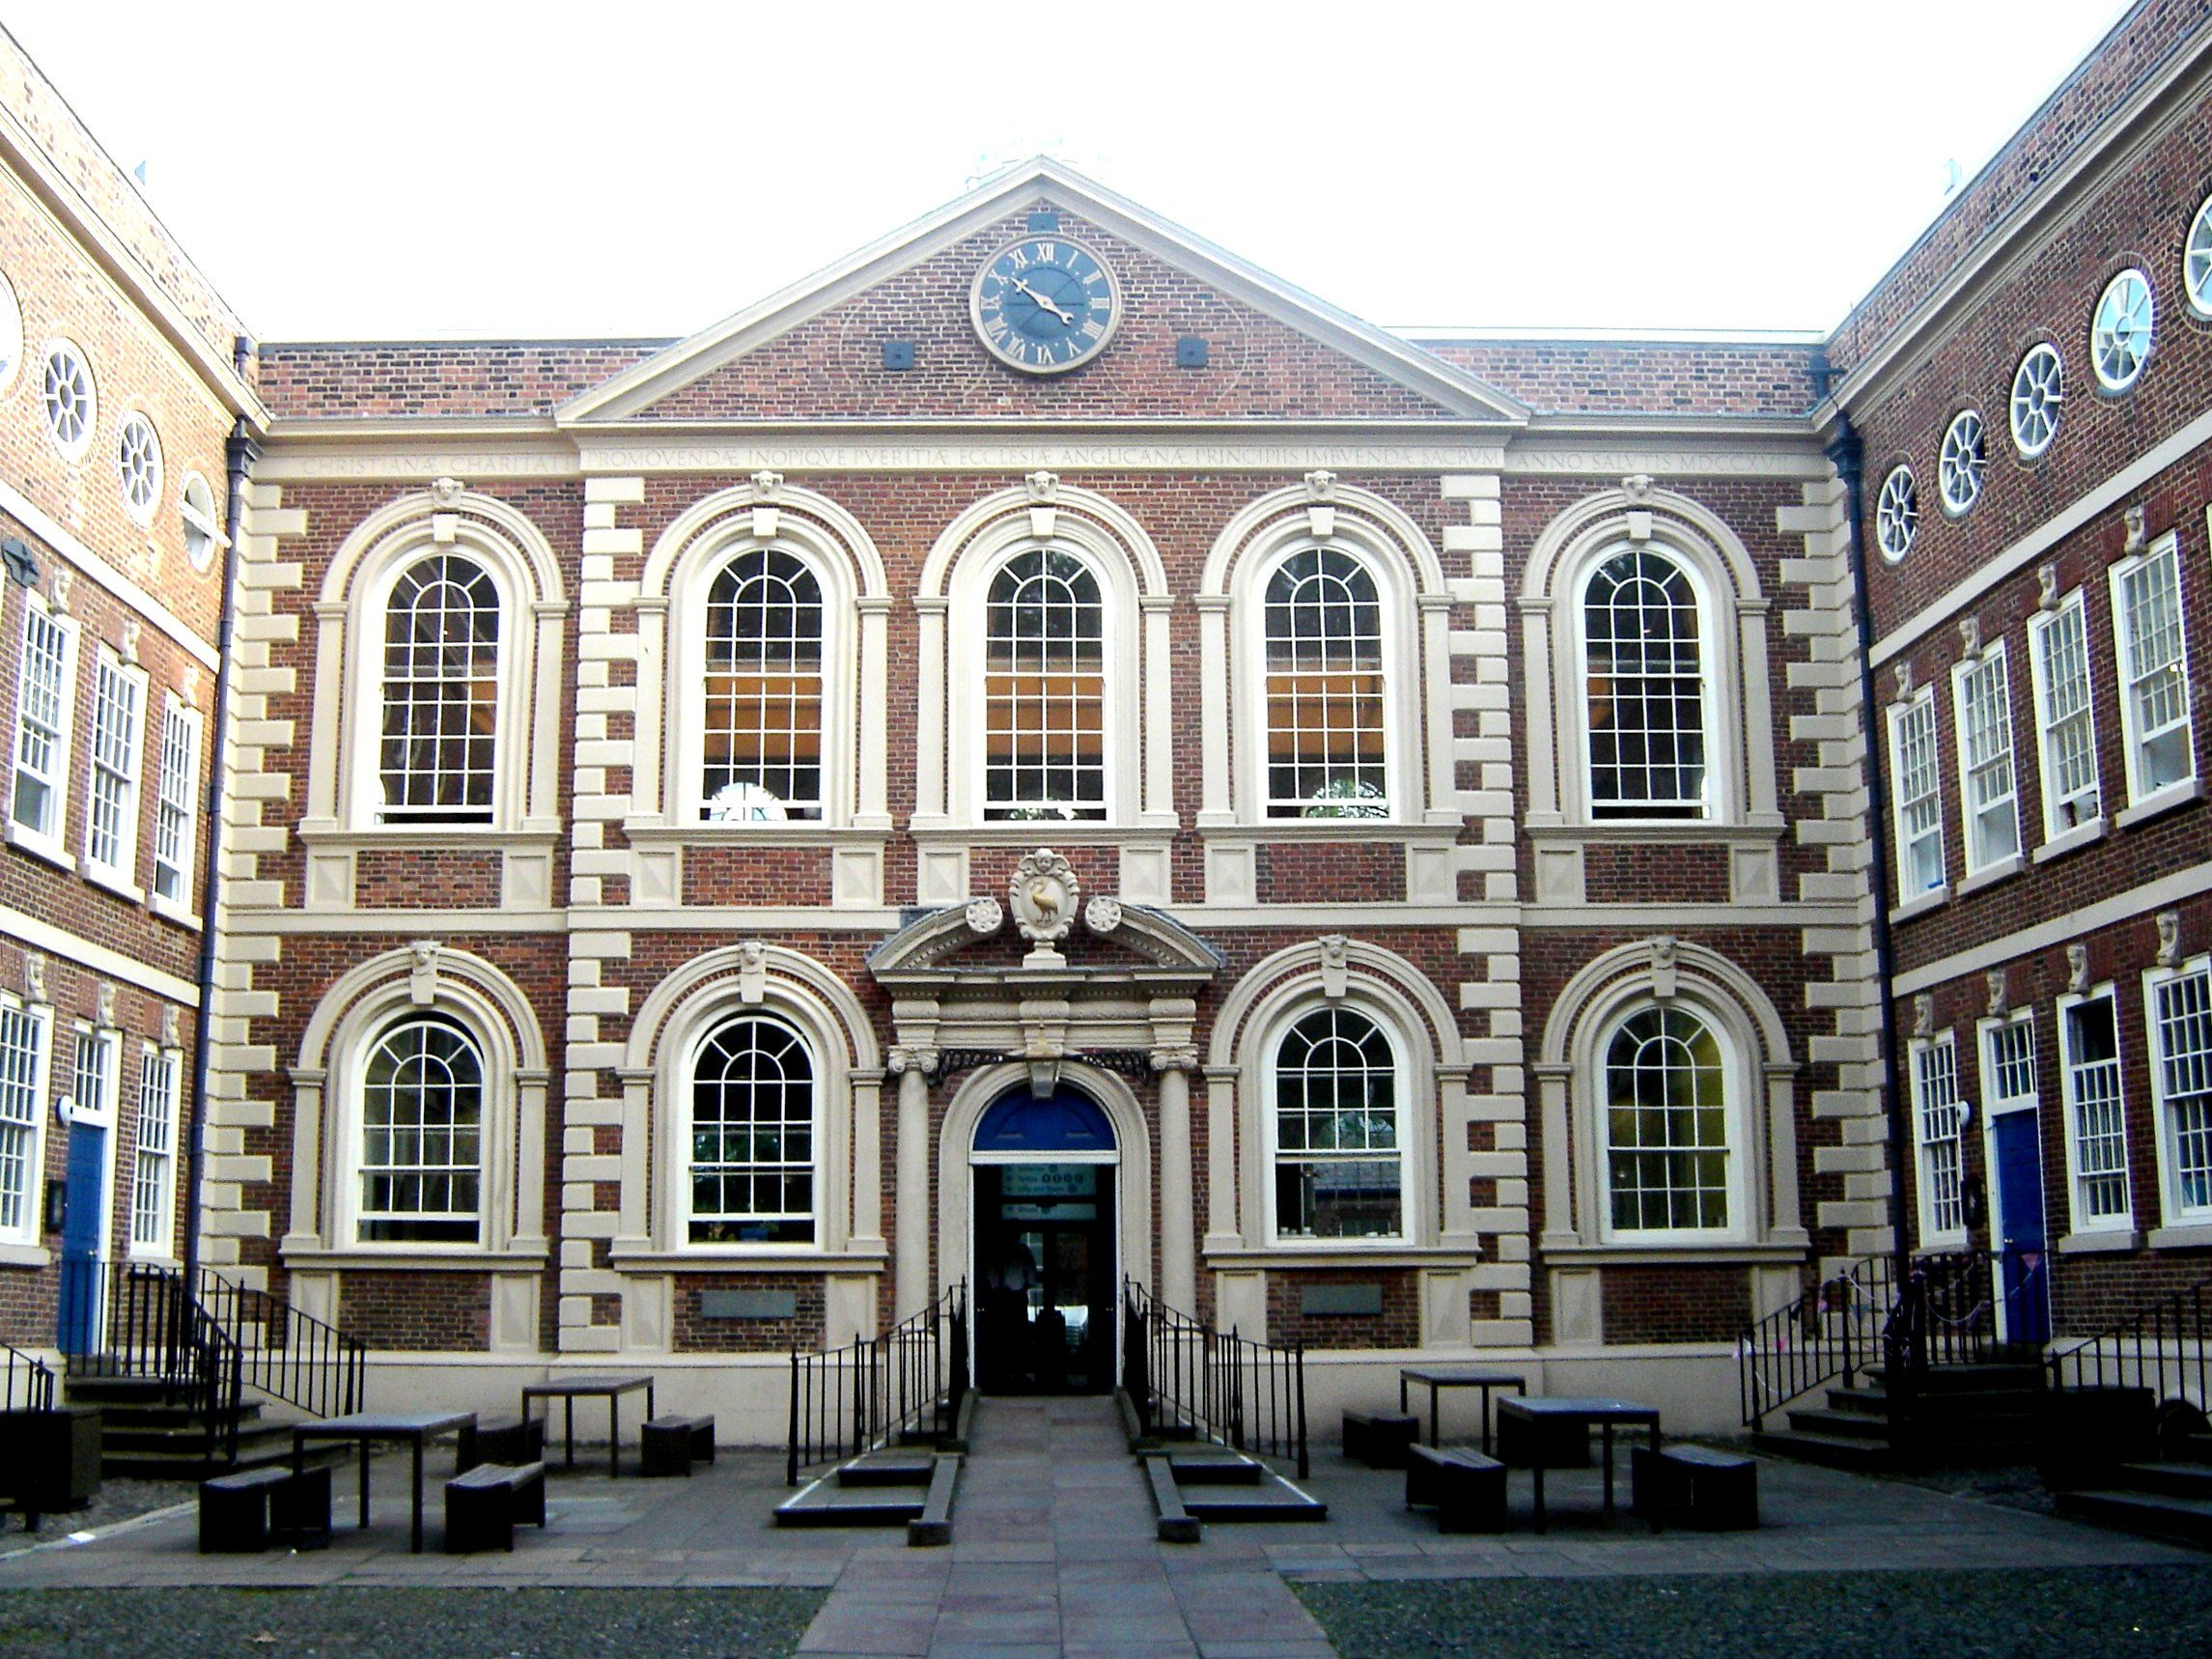 Queen Anne style architecture , Bluecoat Chambers in Liverpool, of in a  version of the original Queen Anne styl